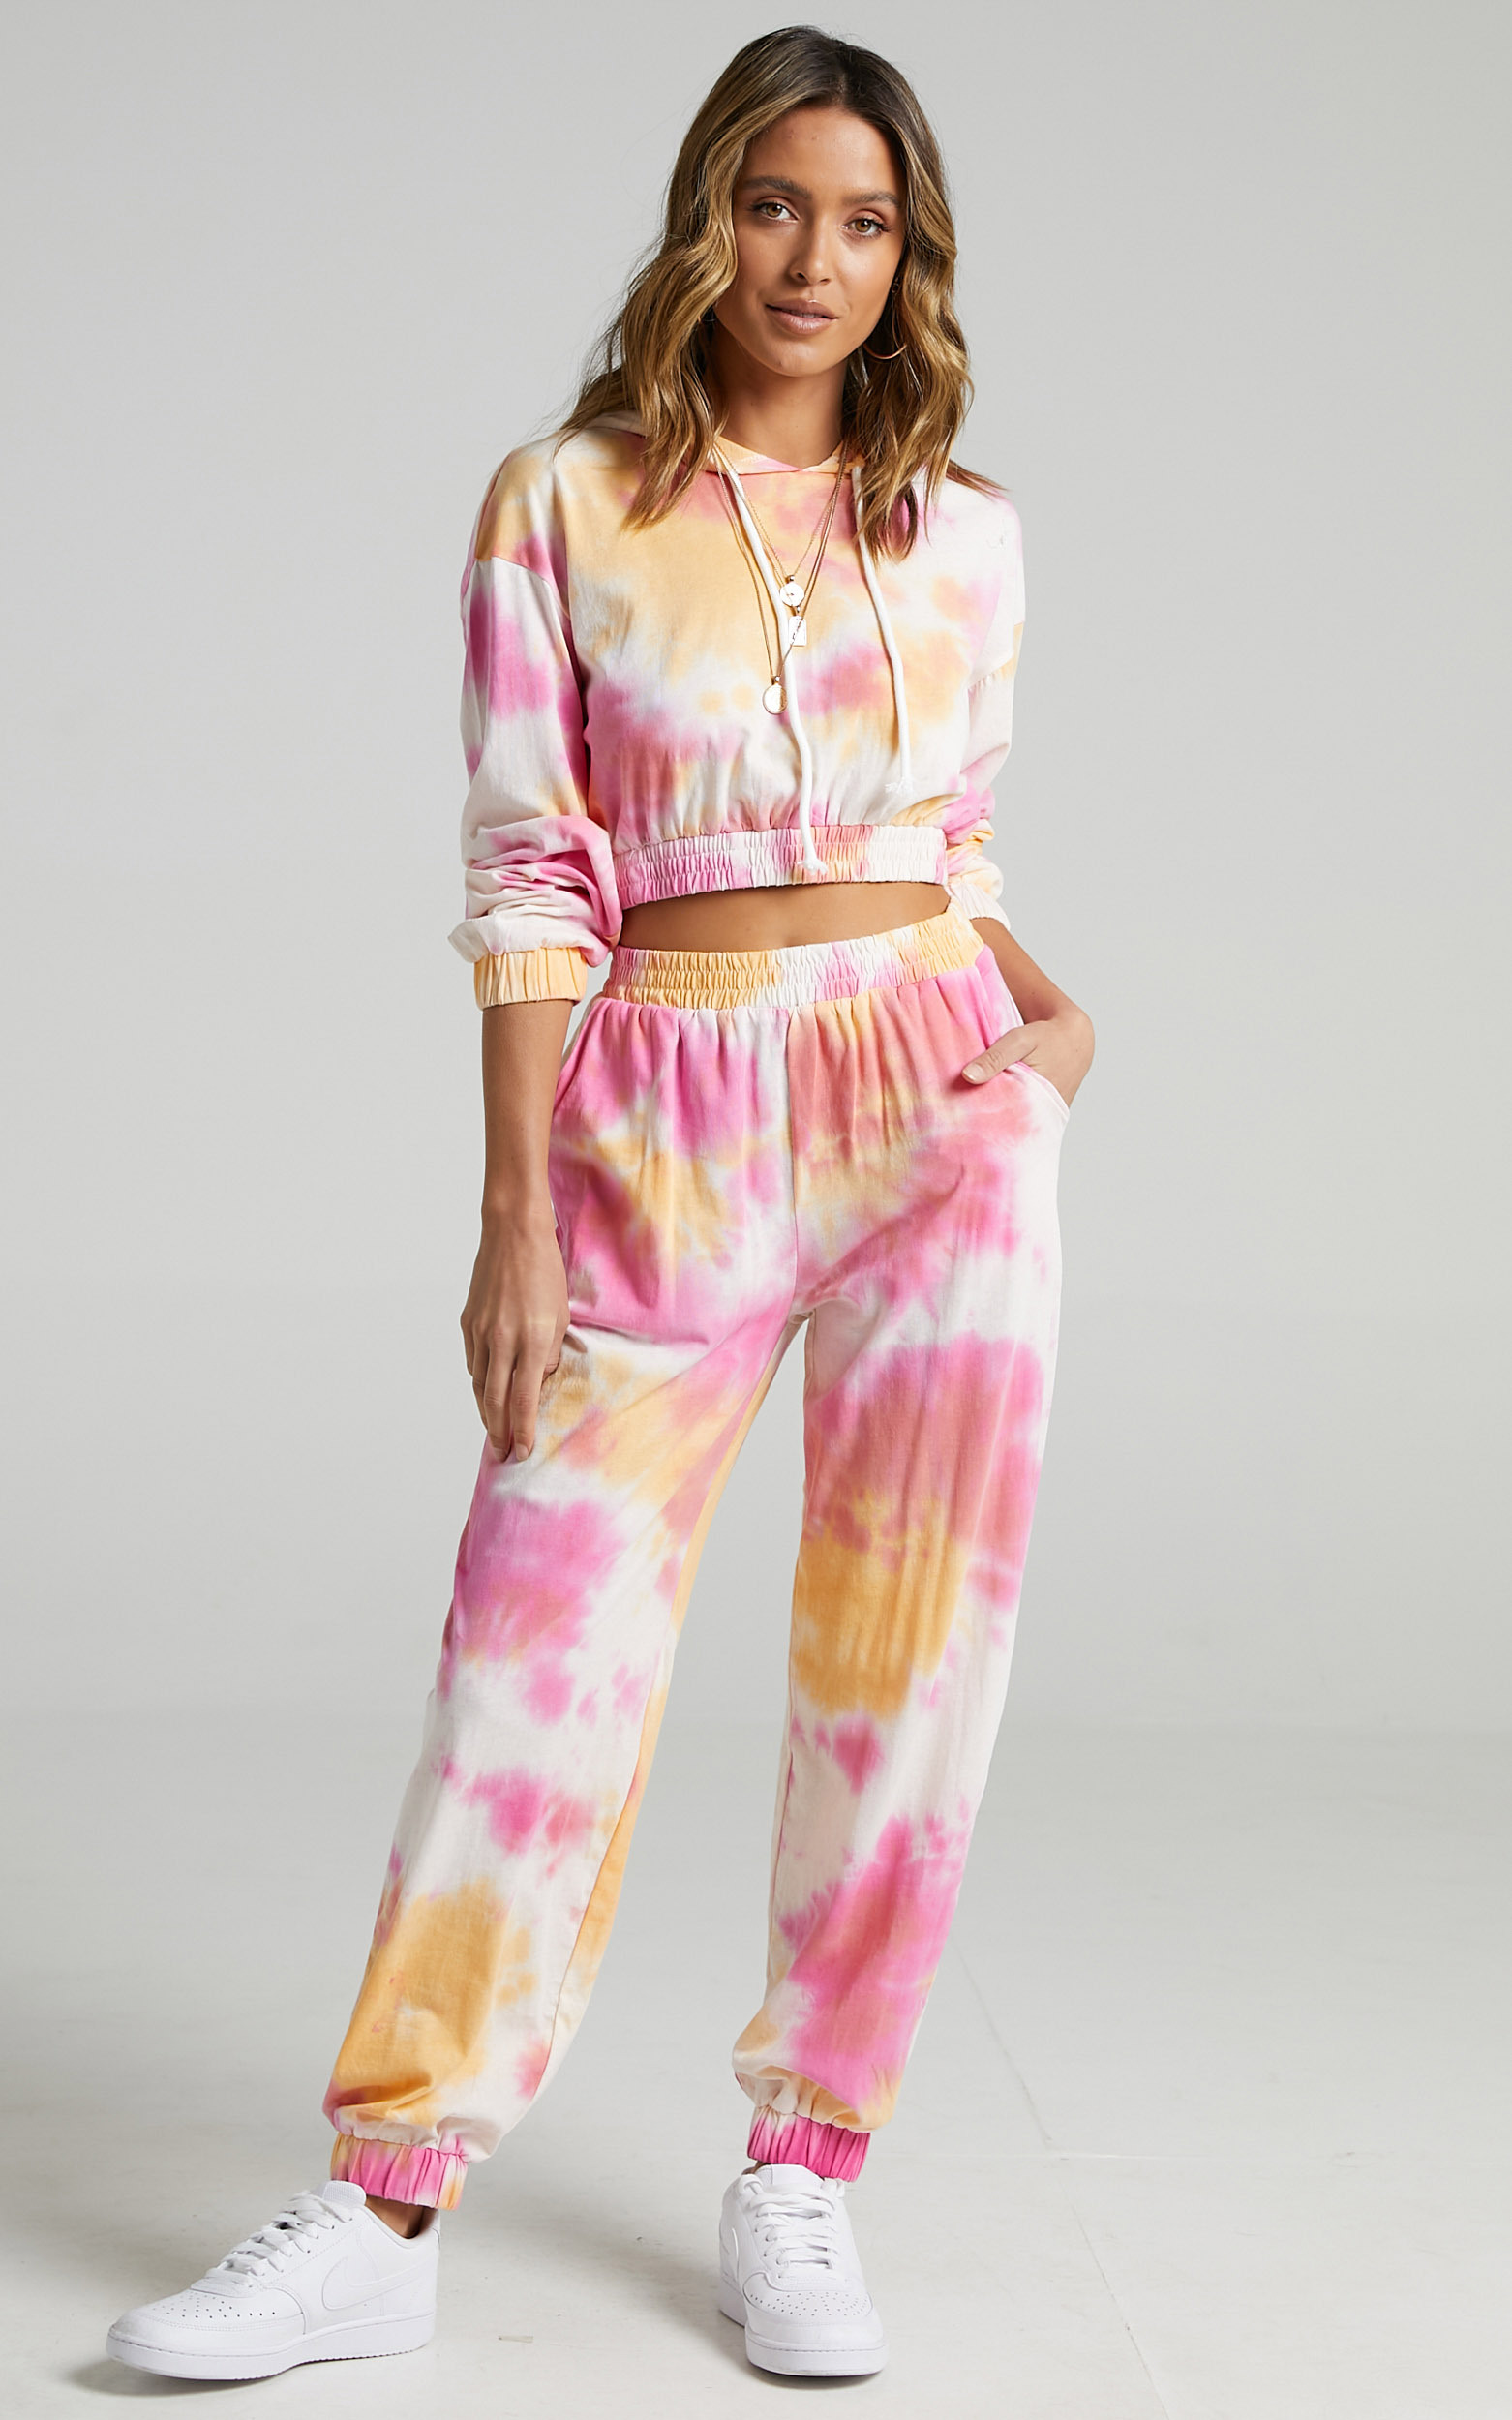 Lopez Two Piece Set in Pink Tie Dye - 6 (XS), Pink, hi-res image number null